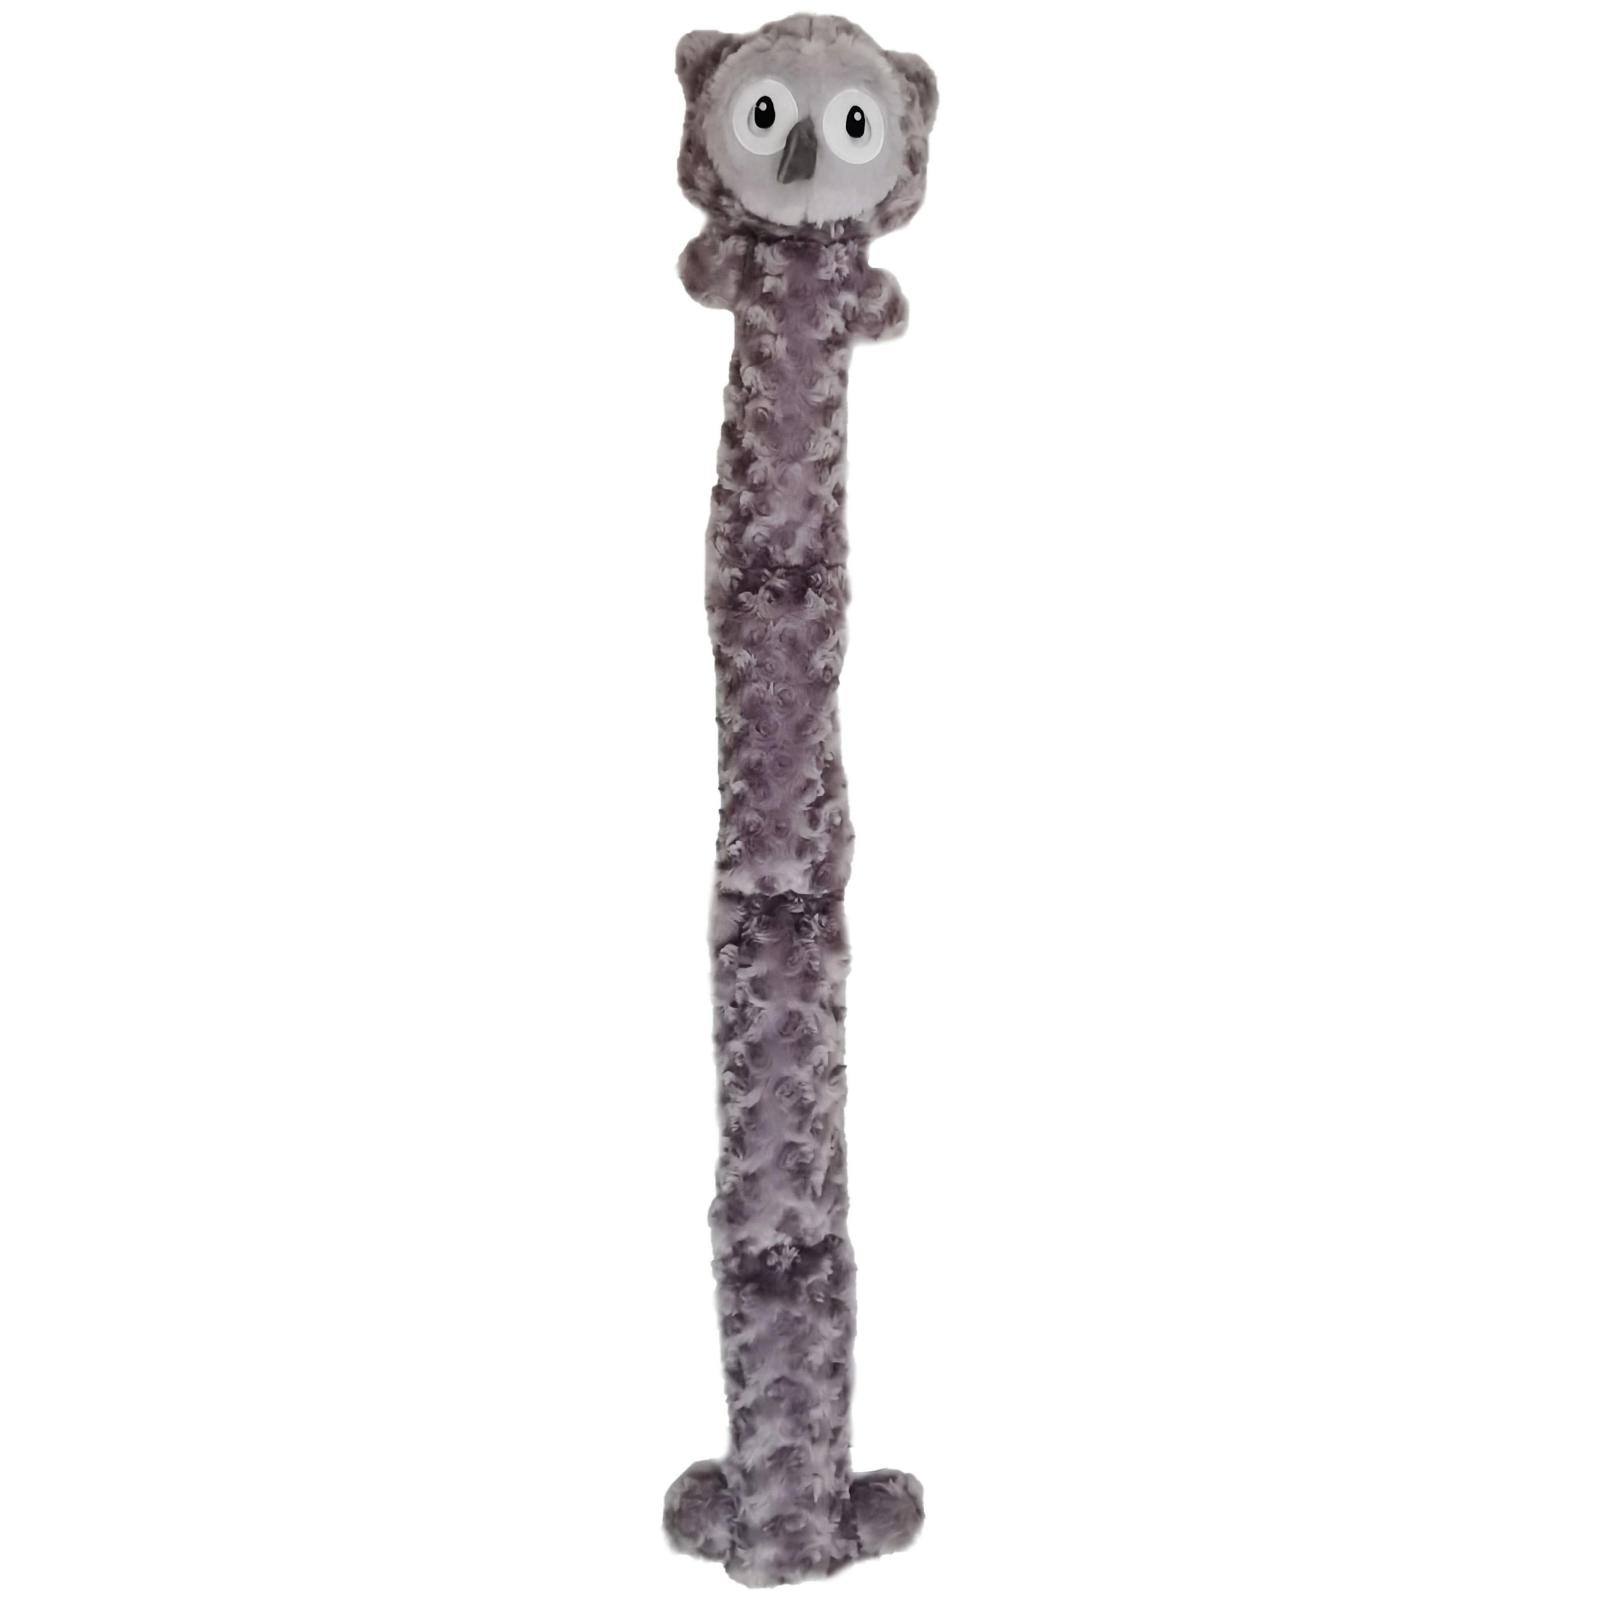 Bark-a-boo BARK-A-BOO Plush Long Toy With Squeak Owl